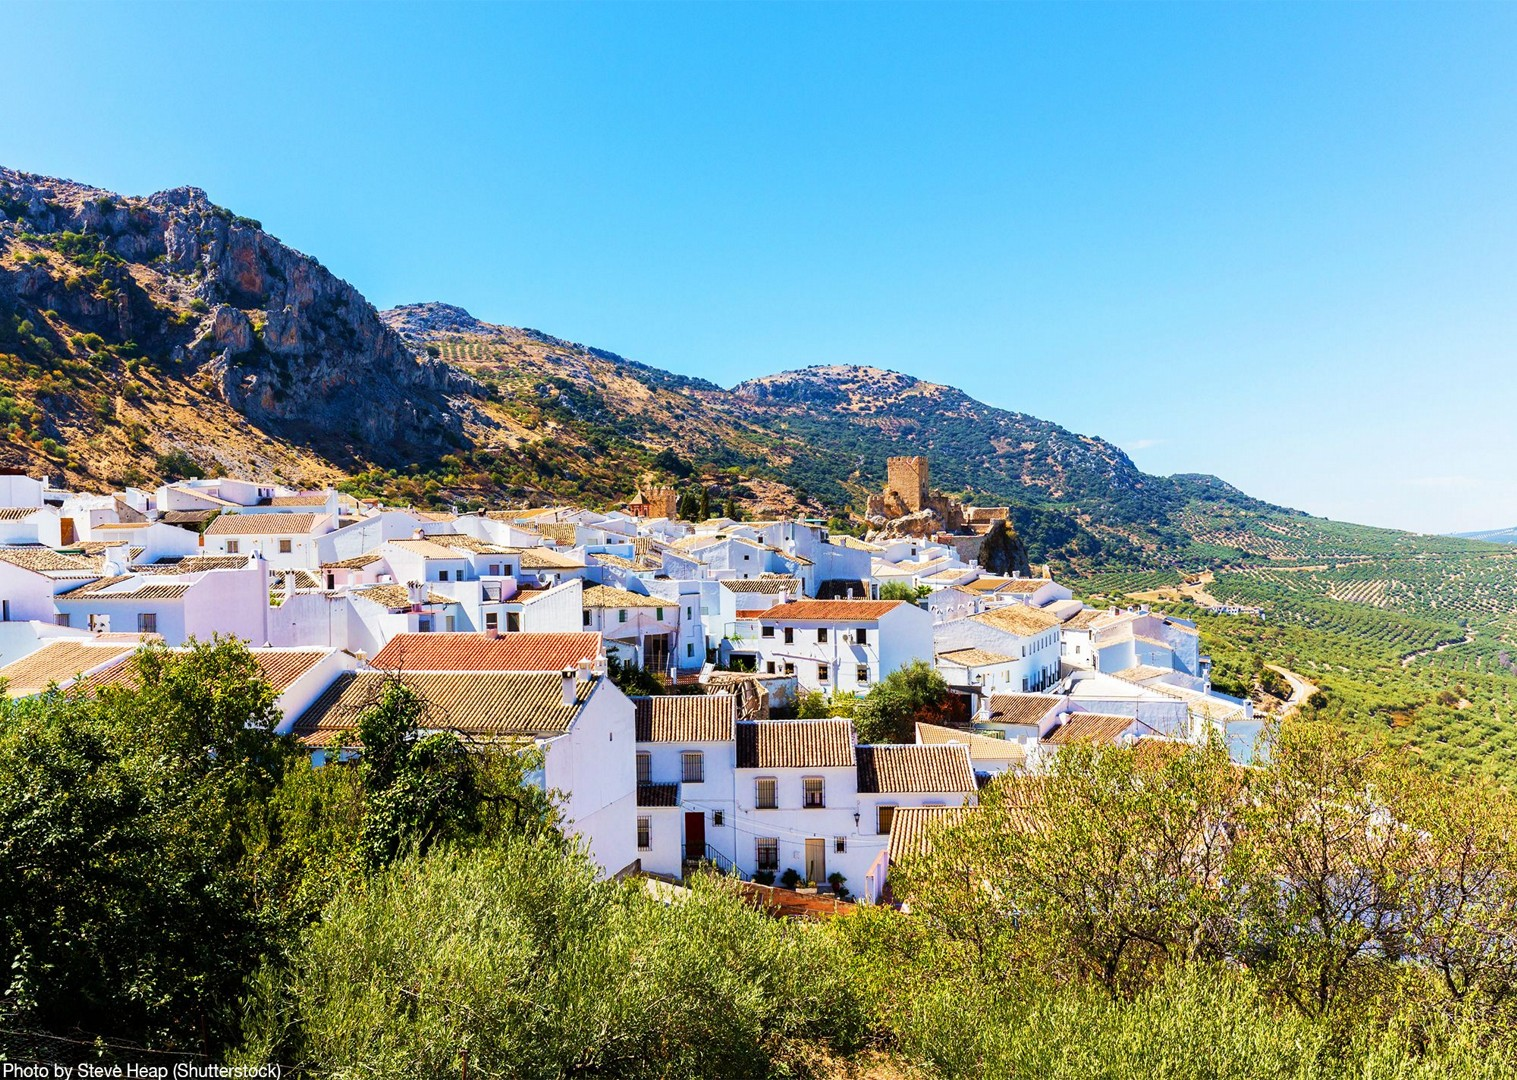 visit-grazalema-town-limestone-mountains-cycling-holiday.jpg - Southern Spain - Andalucia - Los Pueblos Blancos - Self-Guided Road Cycling Holiday - Road Cycling